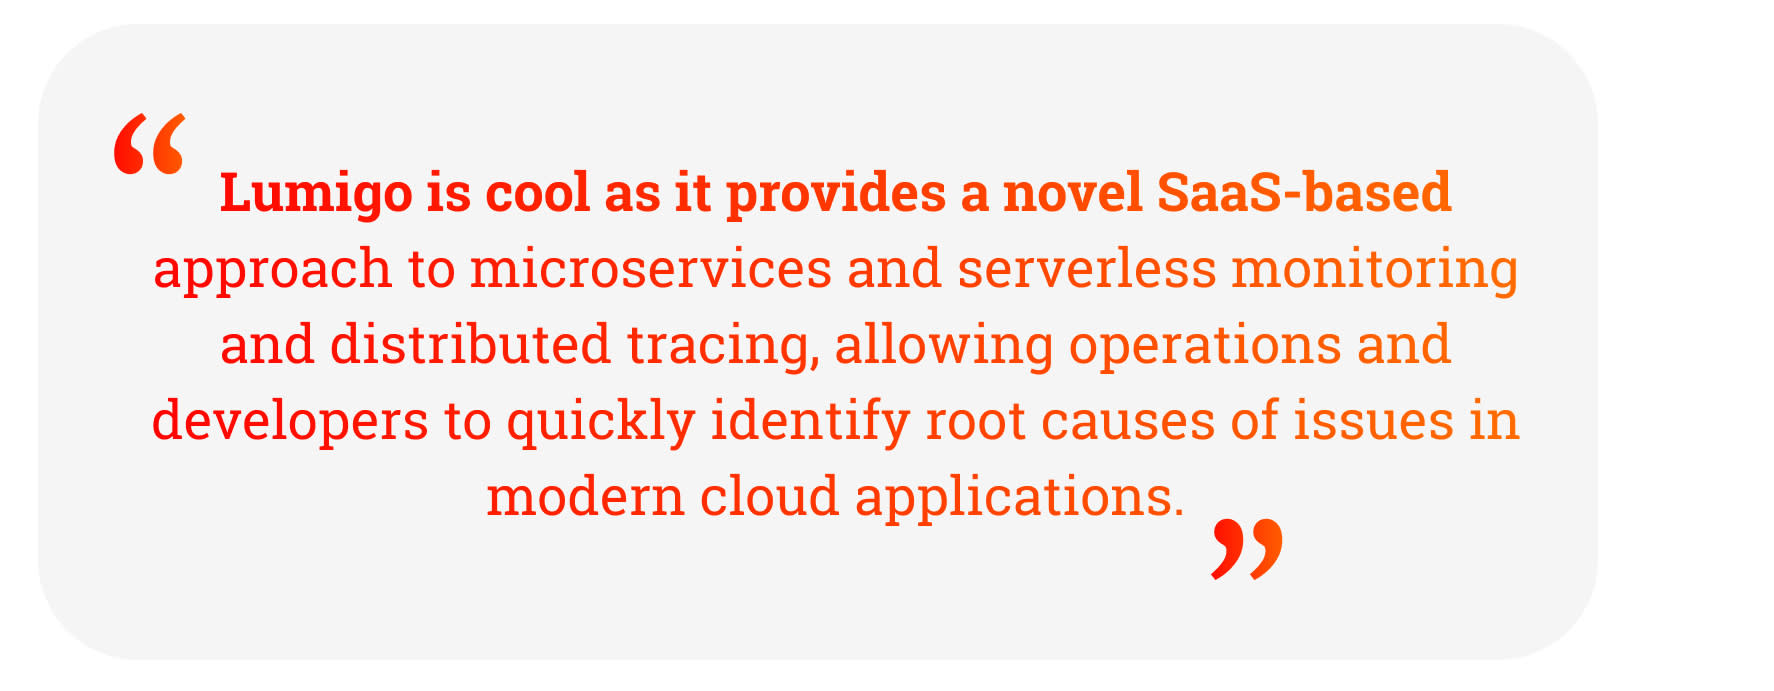 Quote: Lumigo is cool as it provides a novel SaaS-based approach to microservices and serverless monitoring and distributed tracing, allowing operations and developers to quickly identify root causes of issues in modern cloud applications.